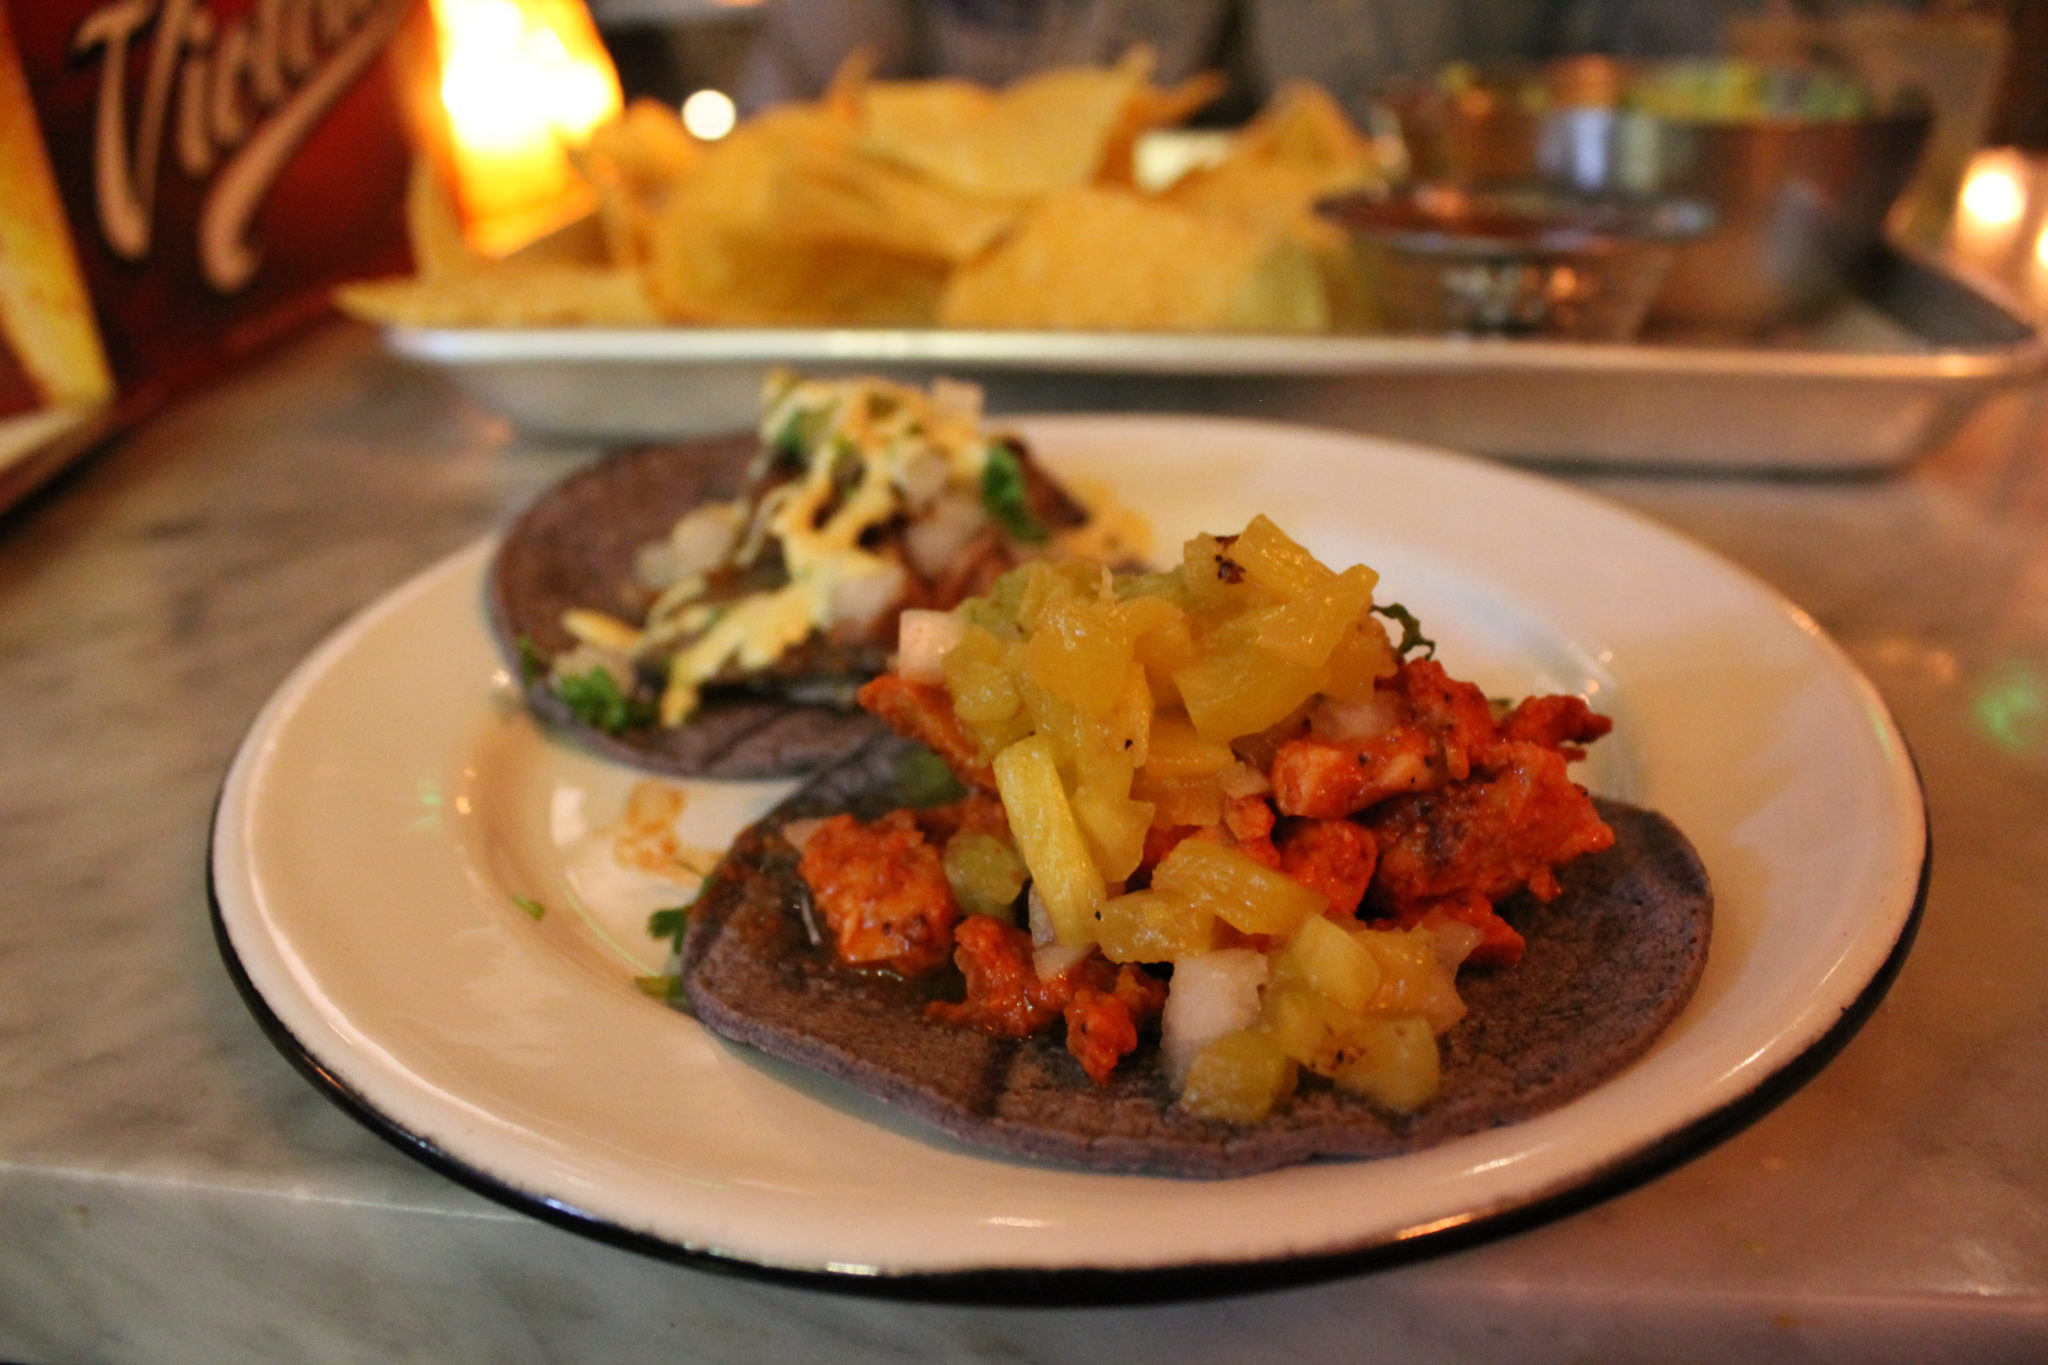 Pork pastor taco at La Güera, 1610 Little Raven St., #200. (Ashley Dean/Denverite)